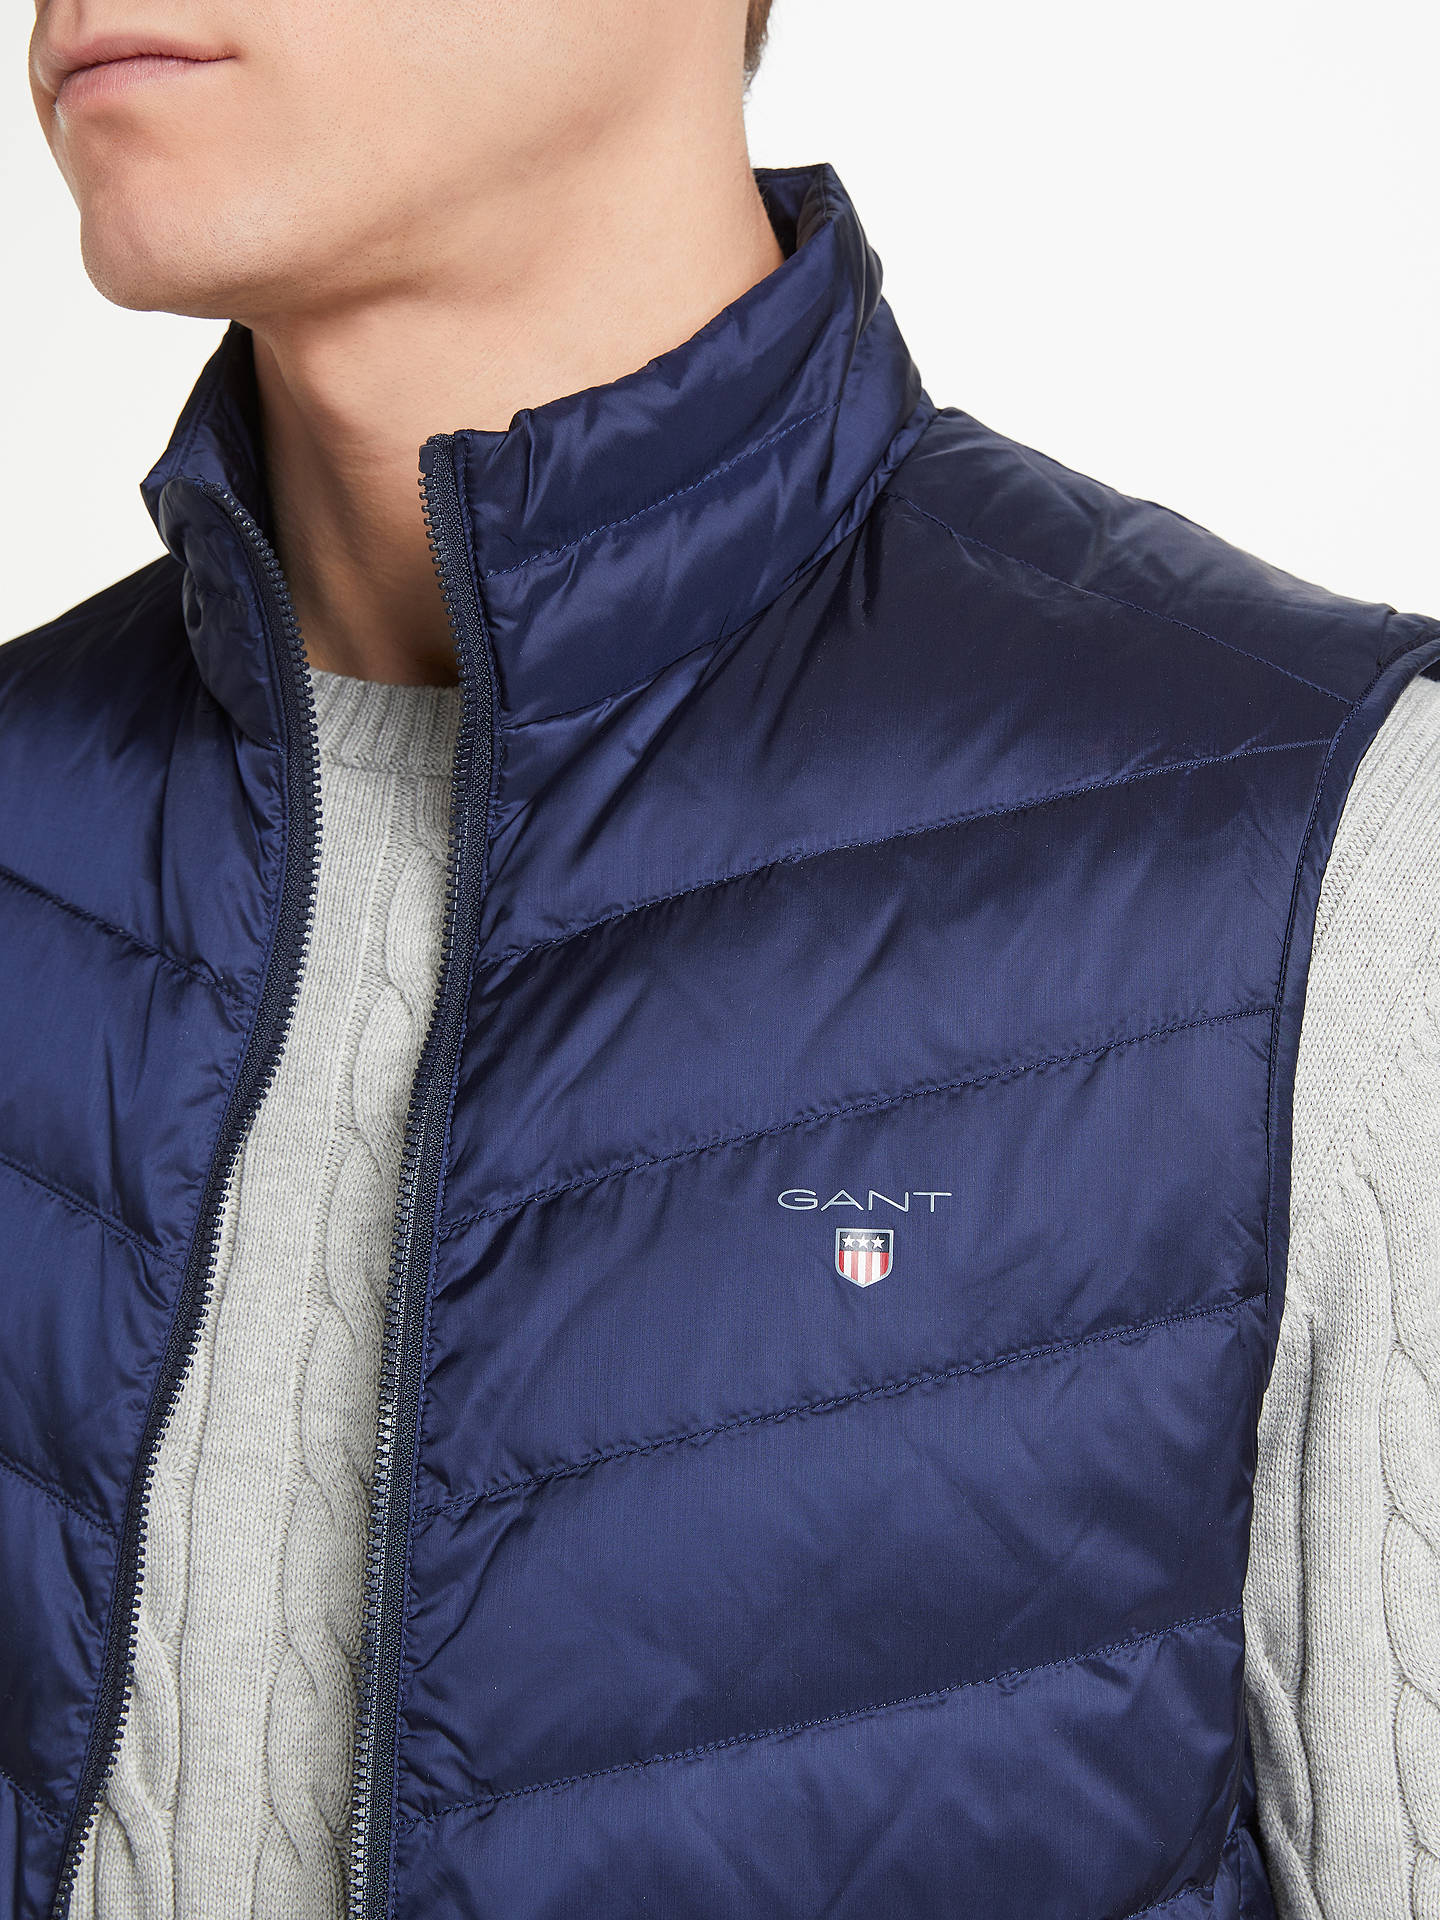 Gant Mens Outdoor Gilet